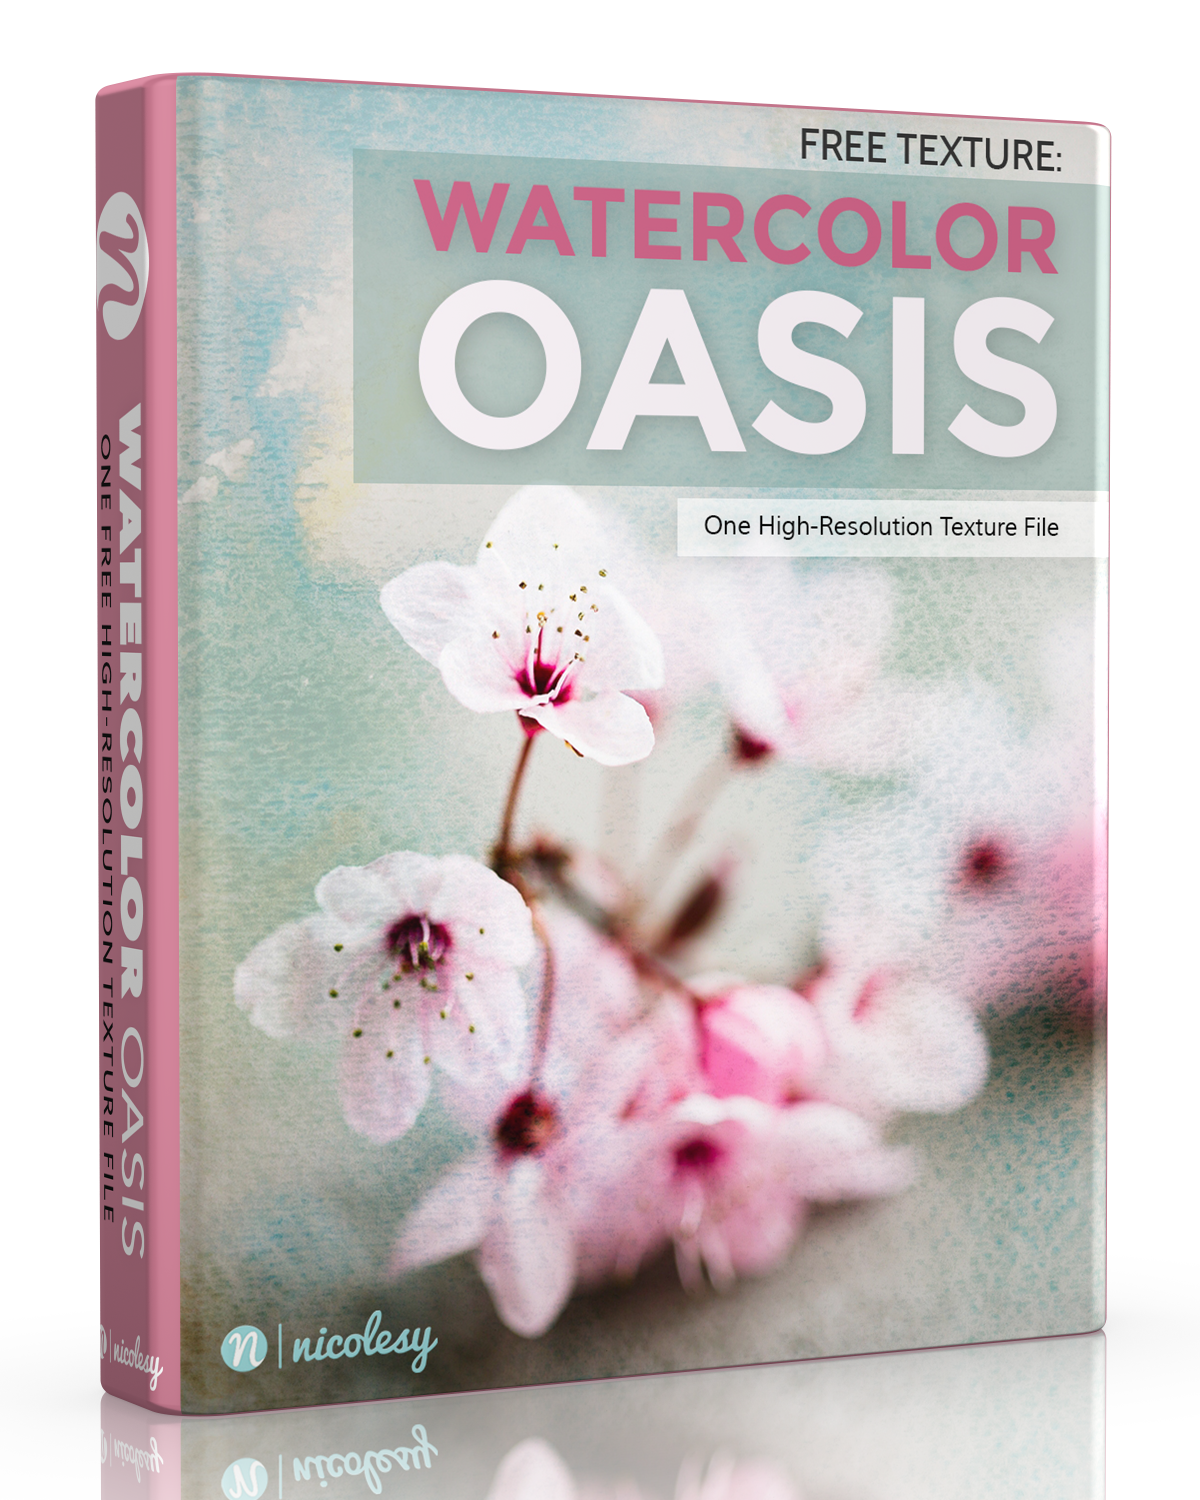 Free Watercolor Texture: Oasis